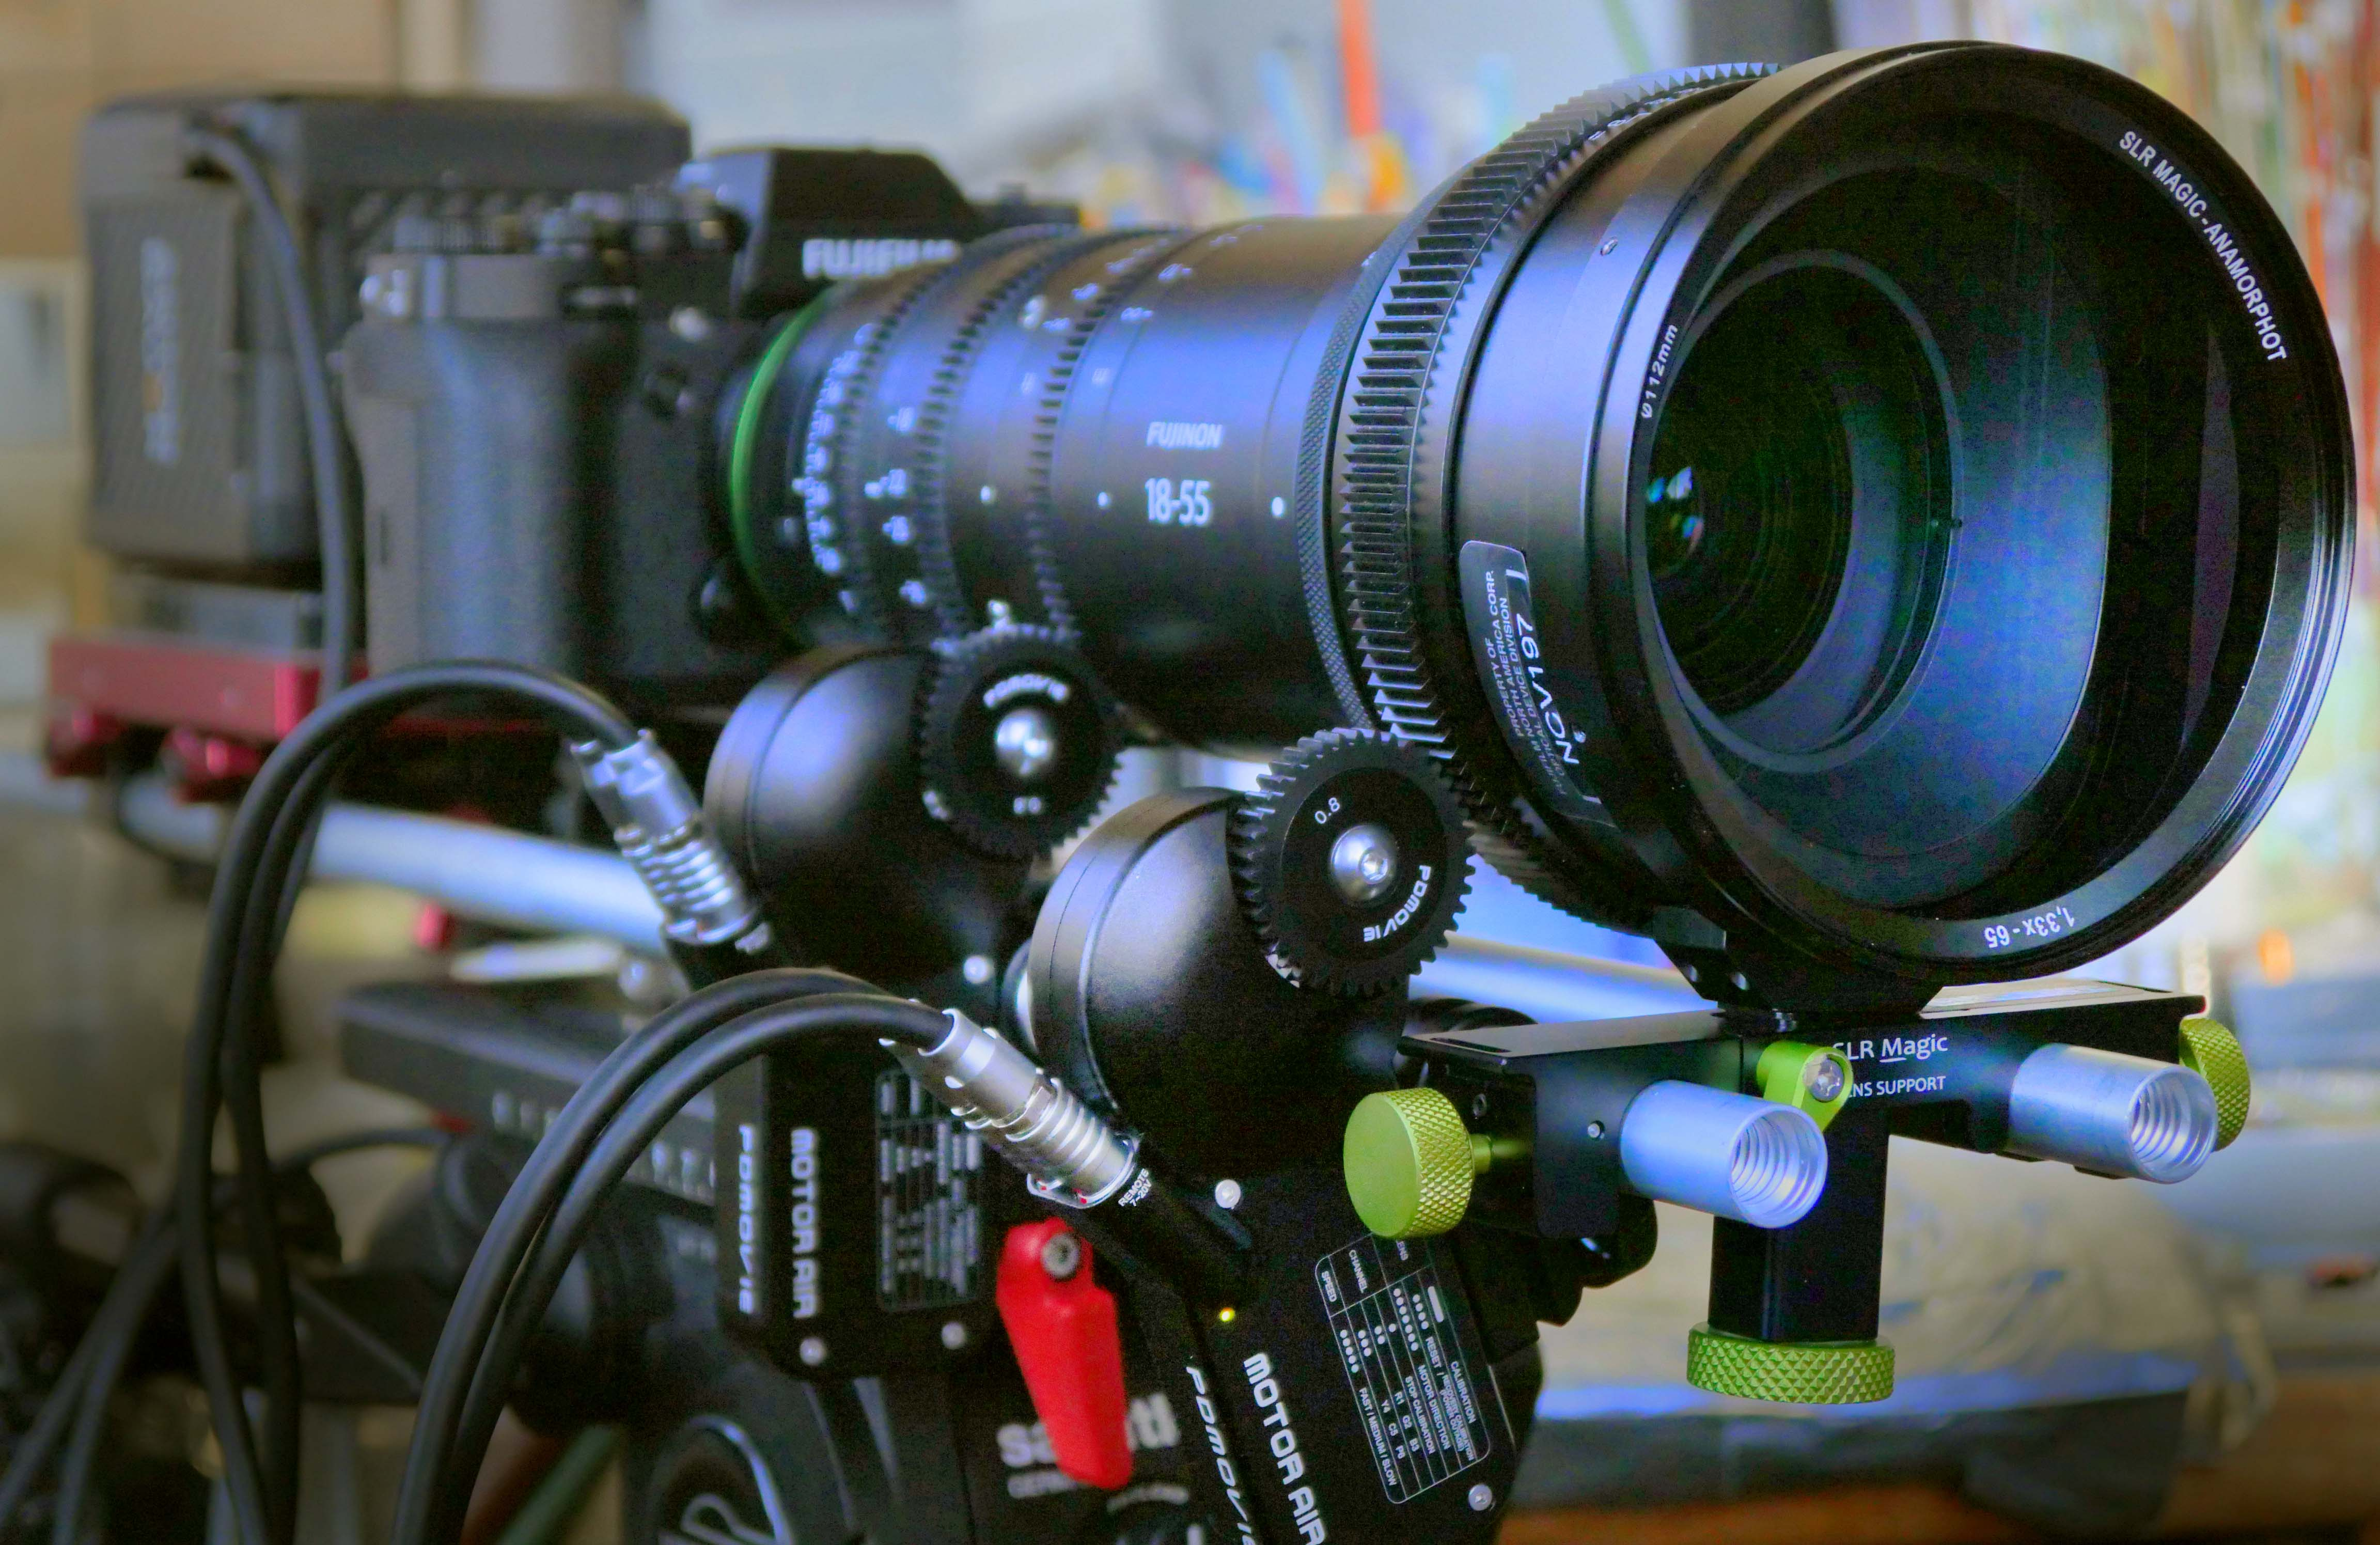 Fujinon's MK lenses paired with SLR Magic's Anamorphot bring widescreen magic to low budget filmmaking 4